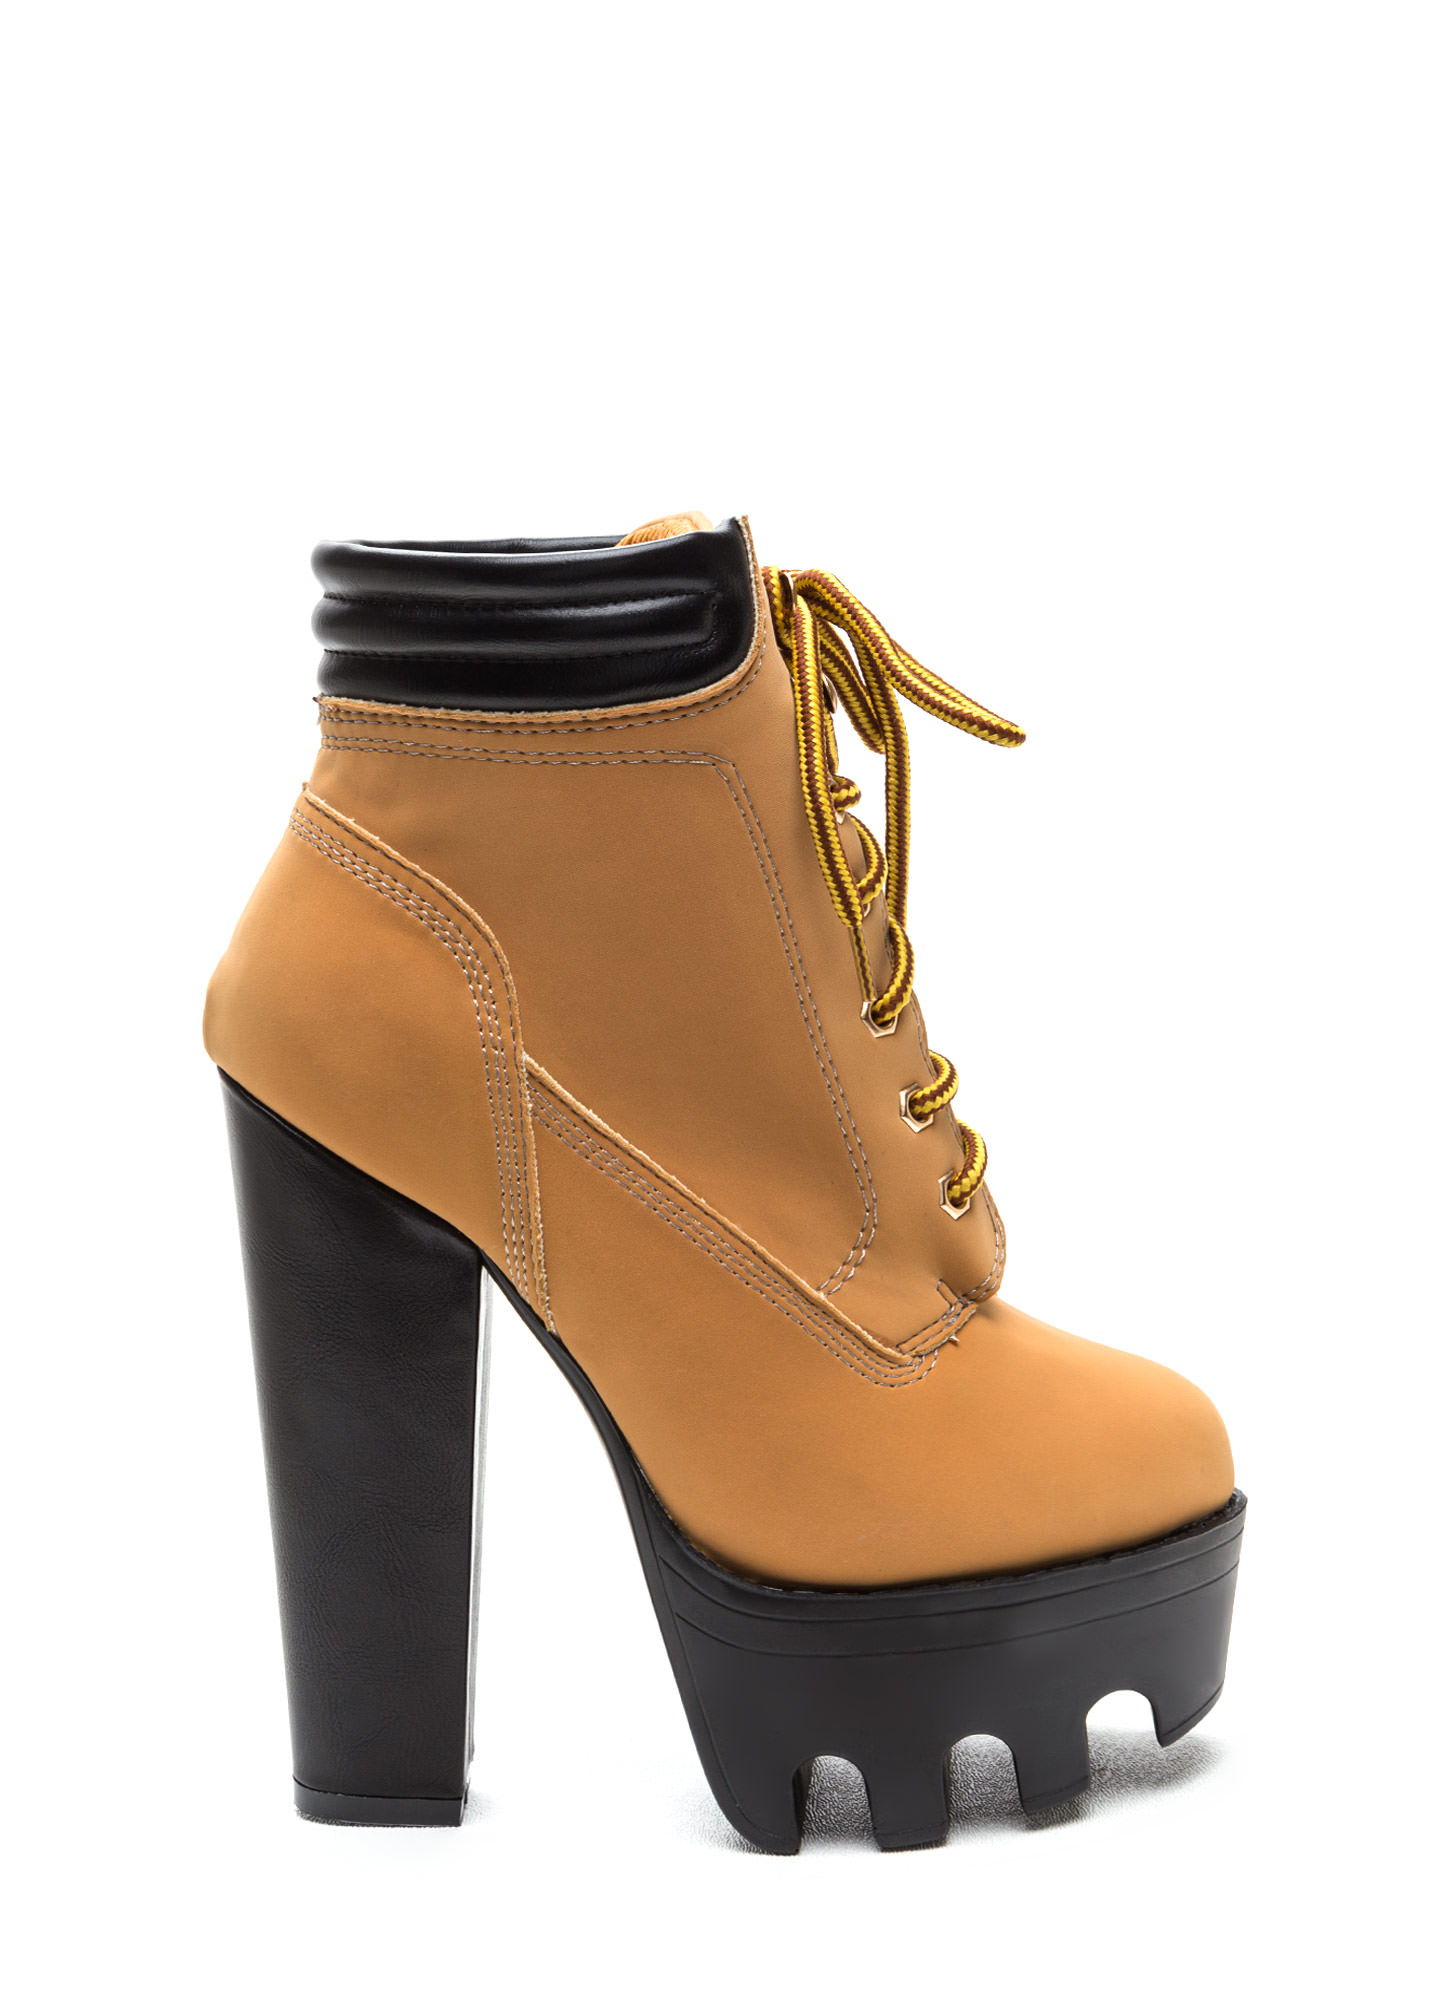 Tread Ruggedly Faux Nubuck Booties CAMEL